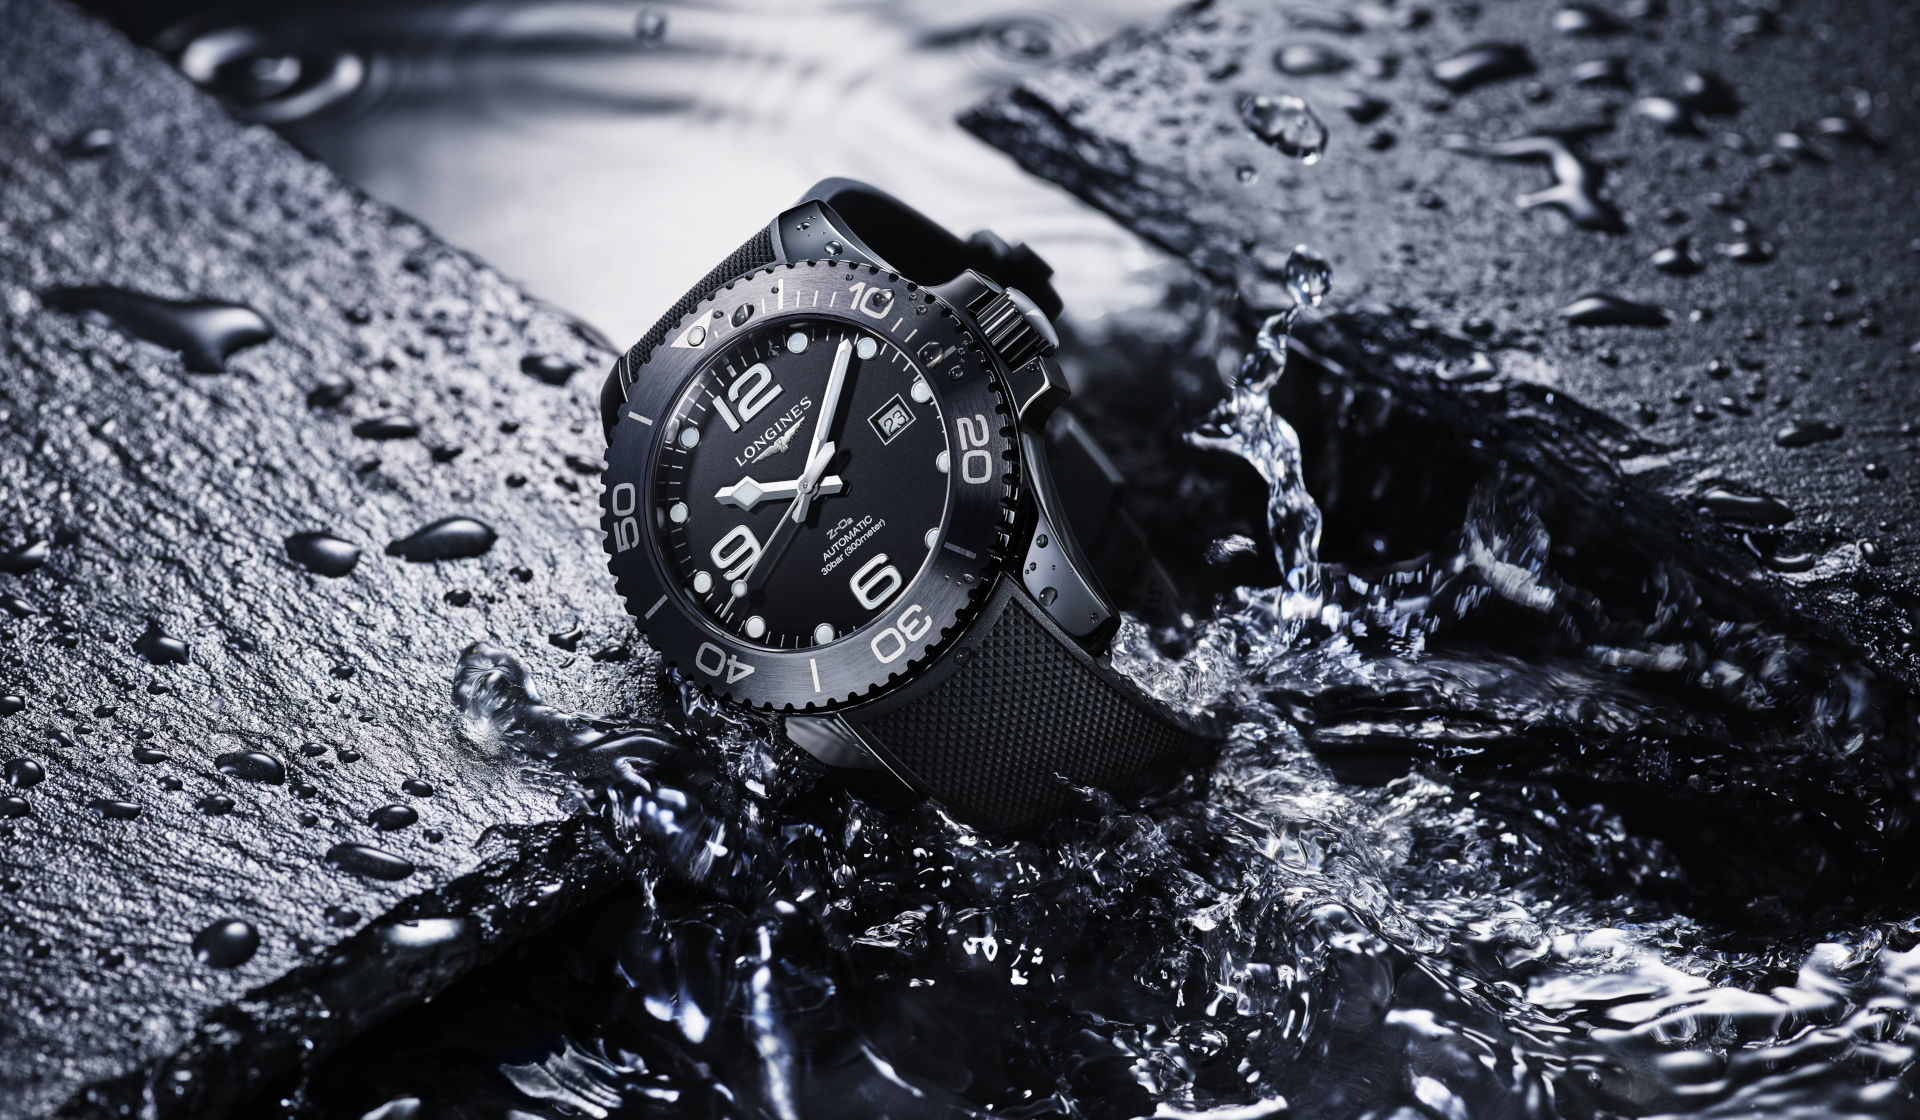 The Longines Hydroconquest All Black Ceramic is everything you love about the collection, just in a better case